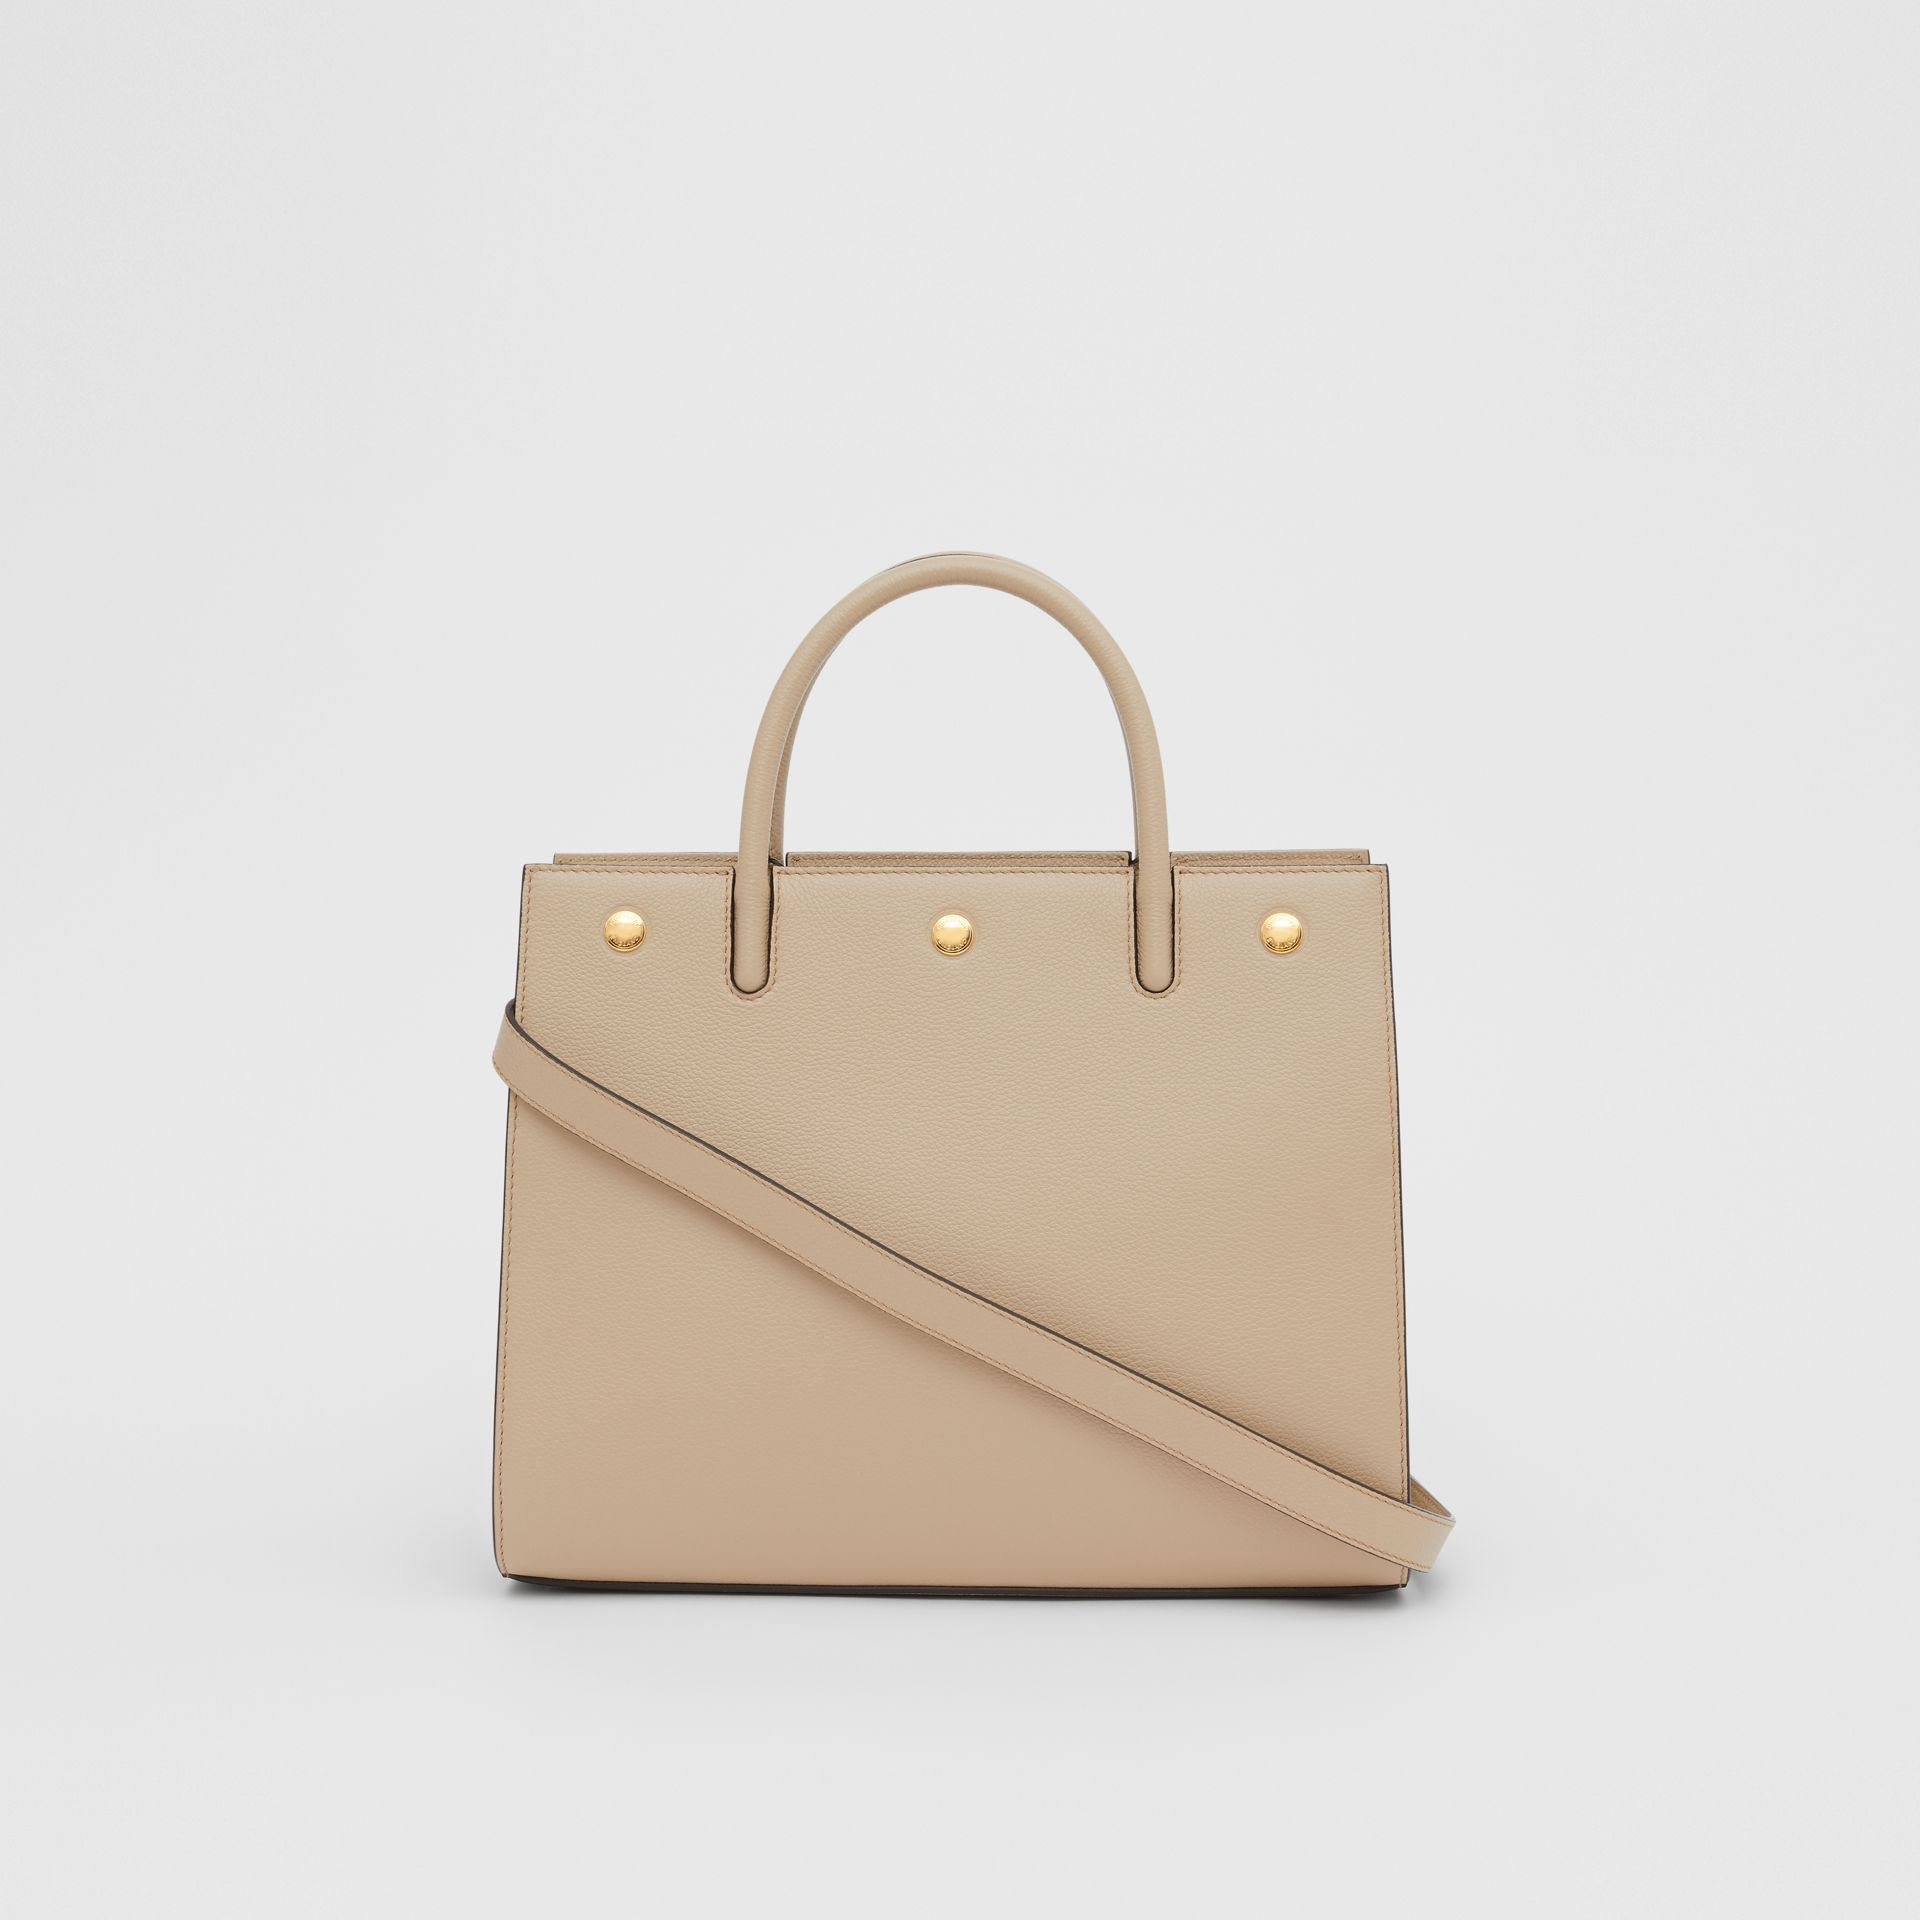 Small Leather Two-handle Title Bag in Light Beige - Women | Burberry United Kingdom - gallery image 5